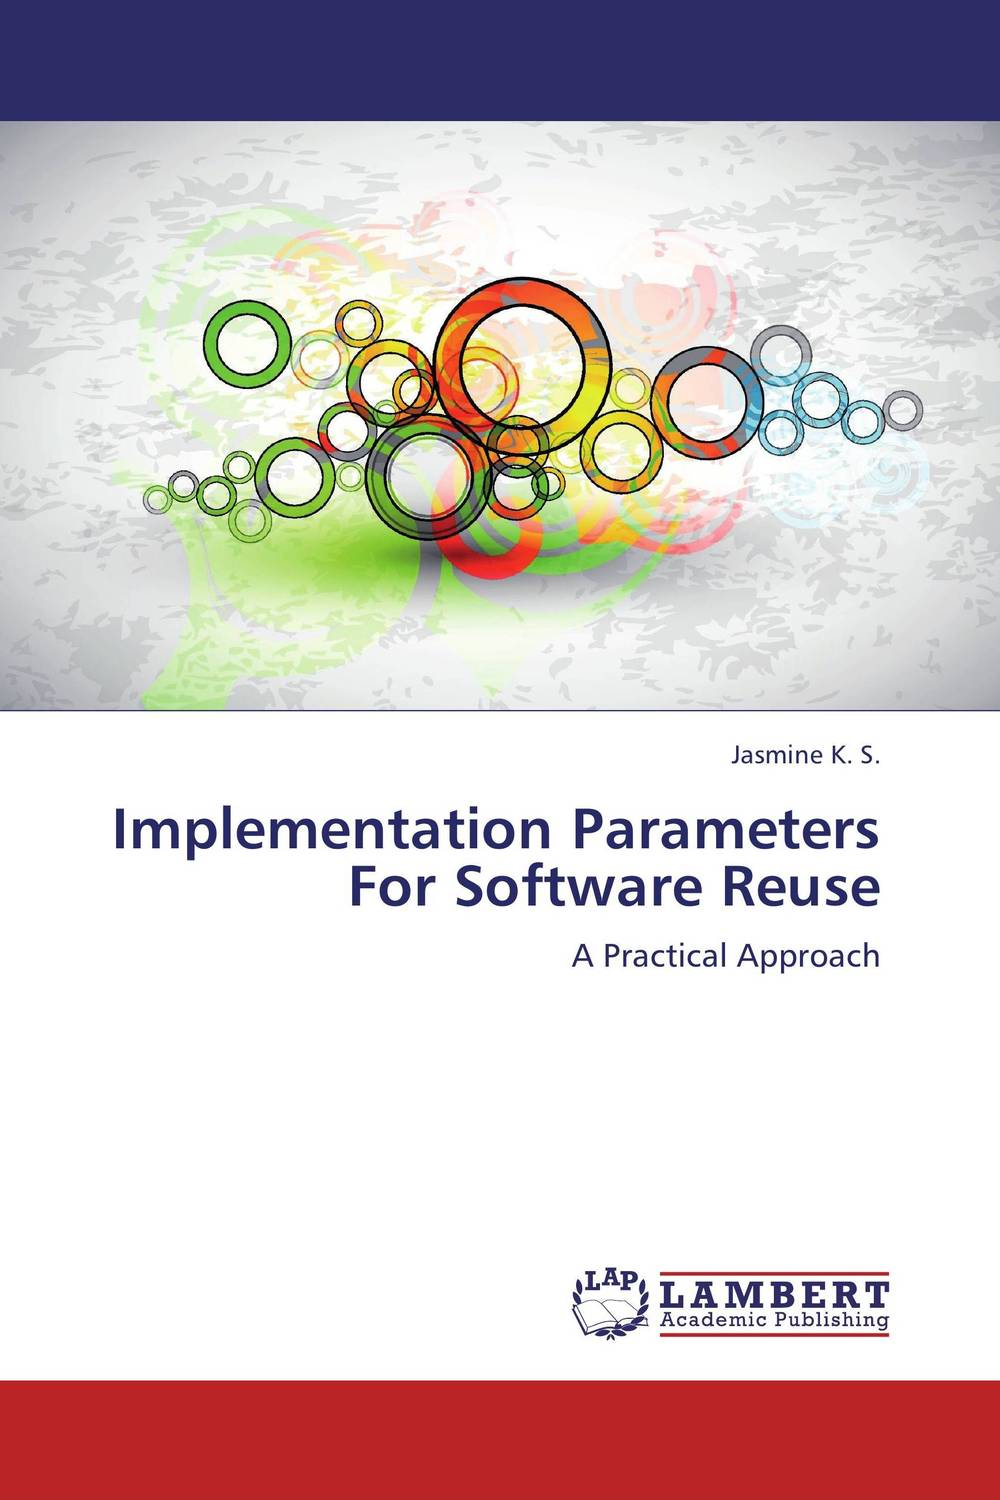 все цены на Implementation Parameters For Software Reuse